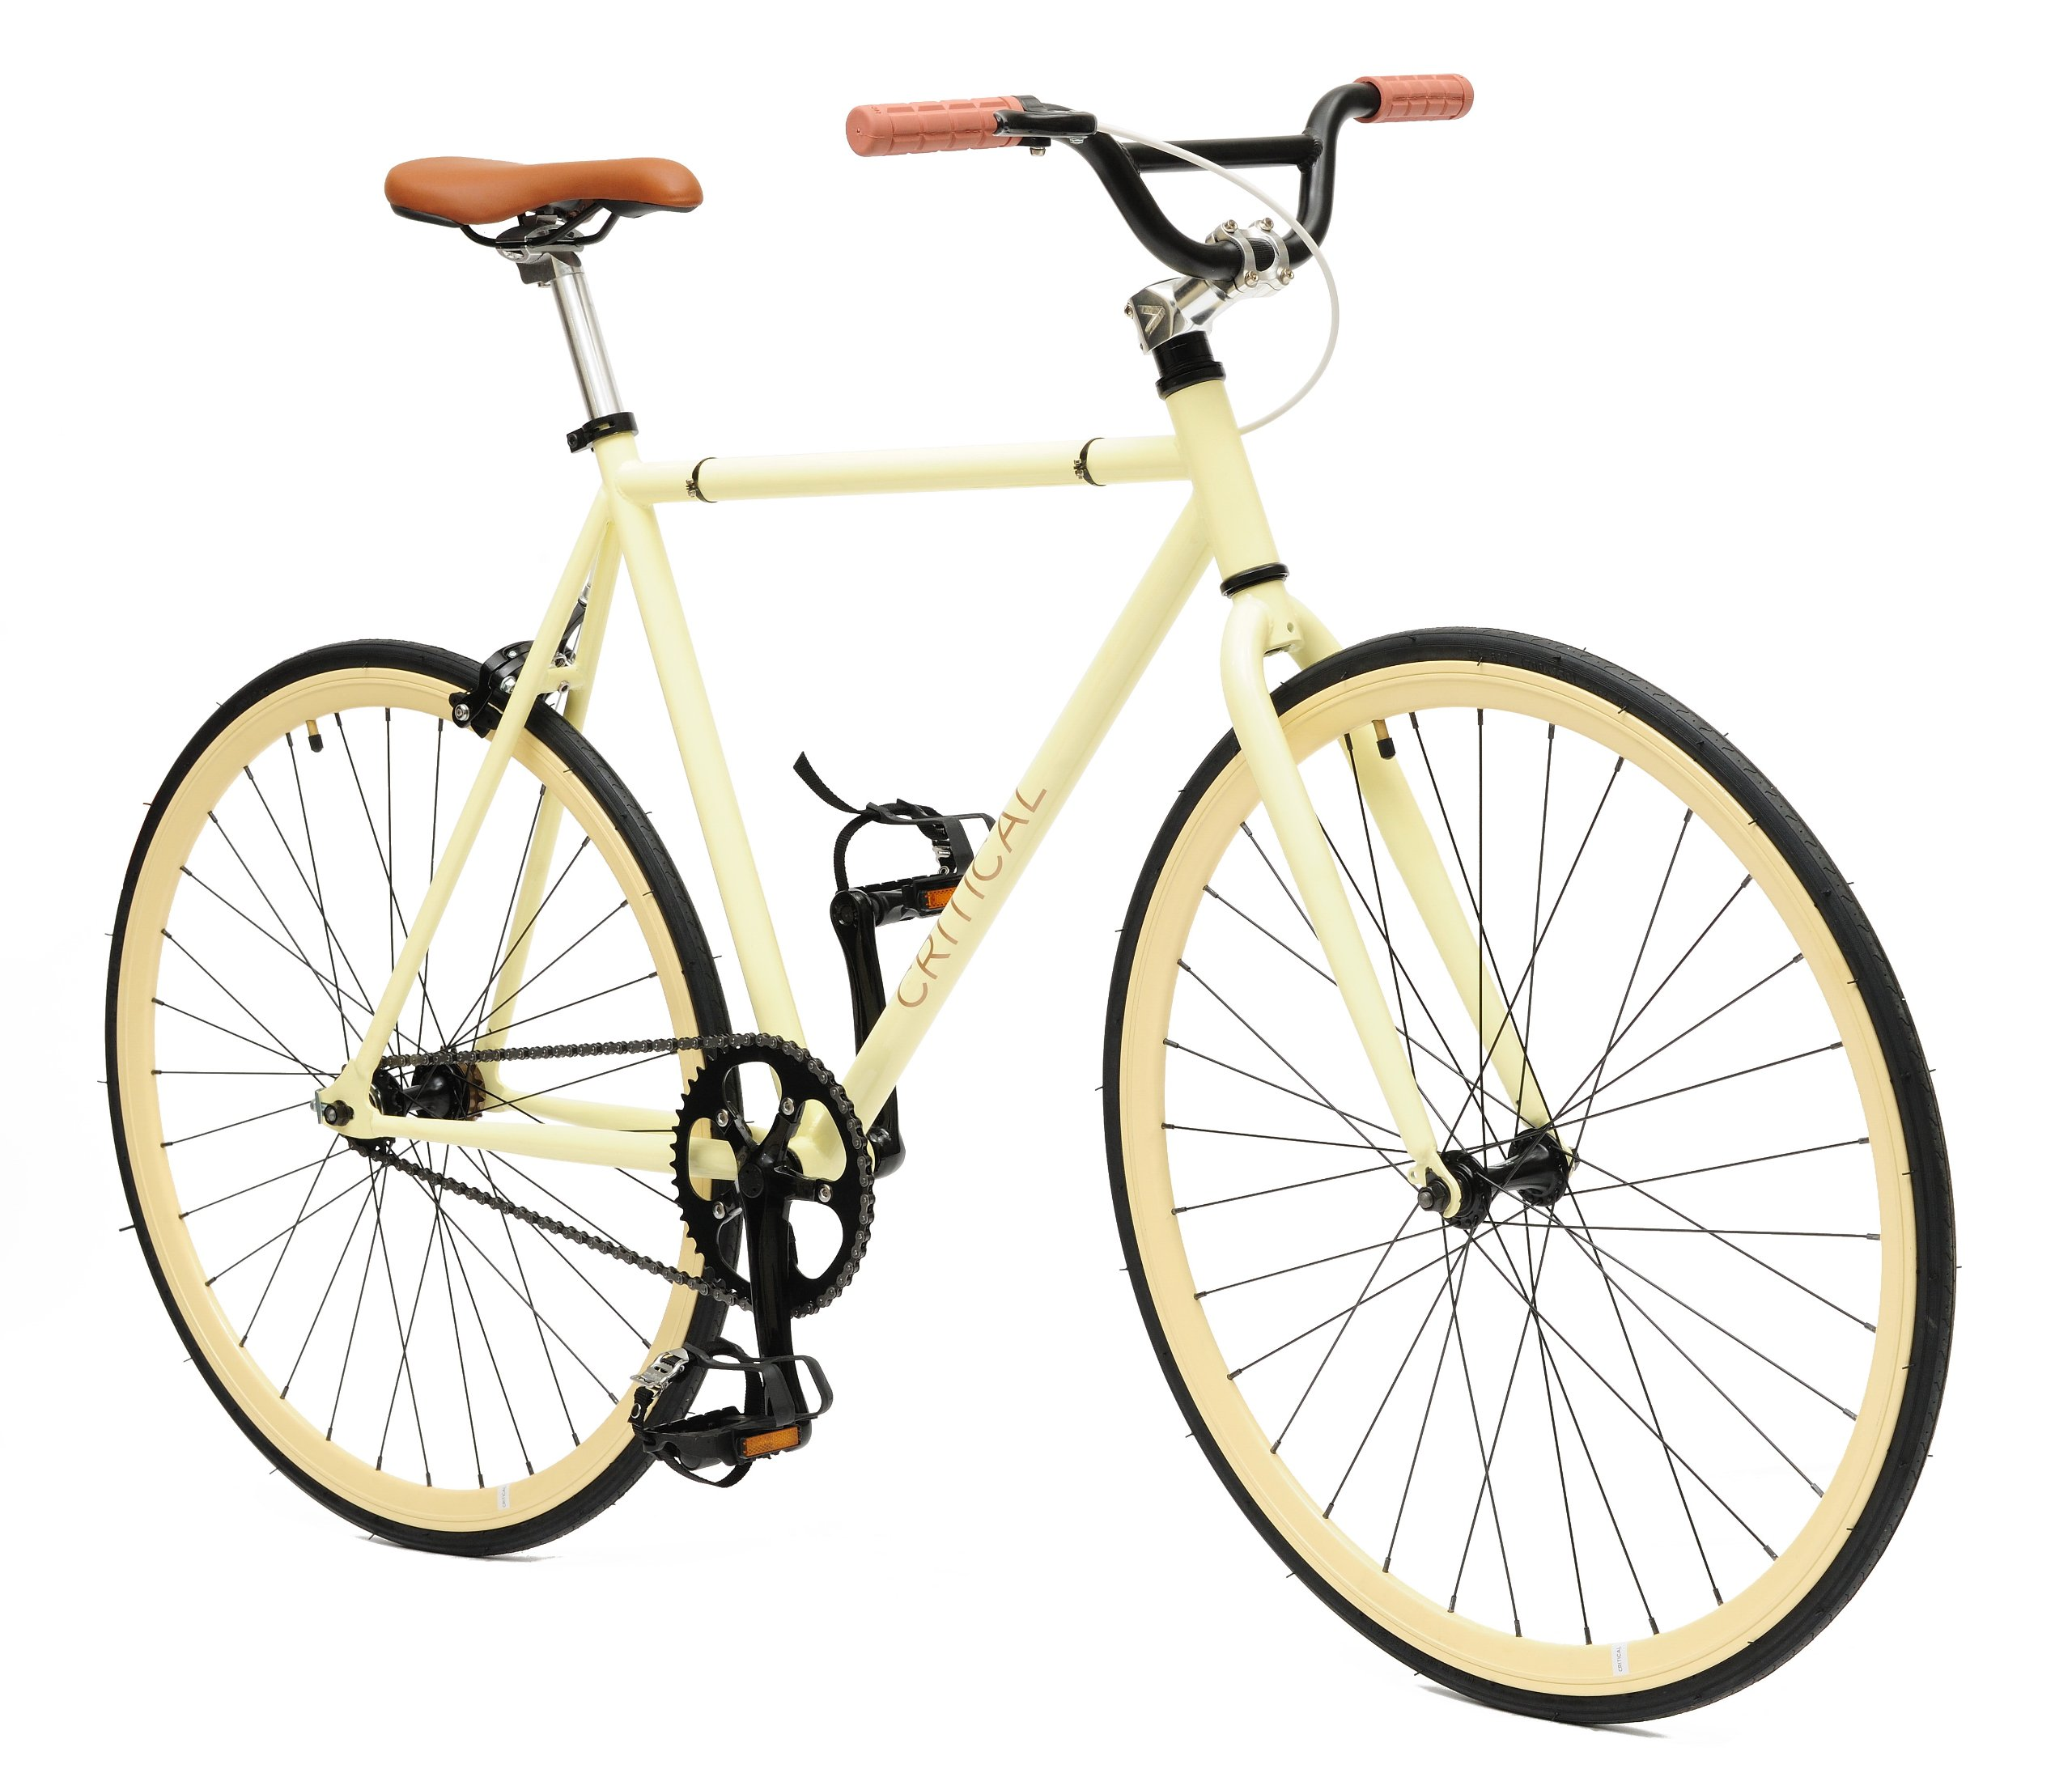 fixie bike Critical Cycles Fixed Gear Single Speed Fixie Urban Road Bike Tan, La